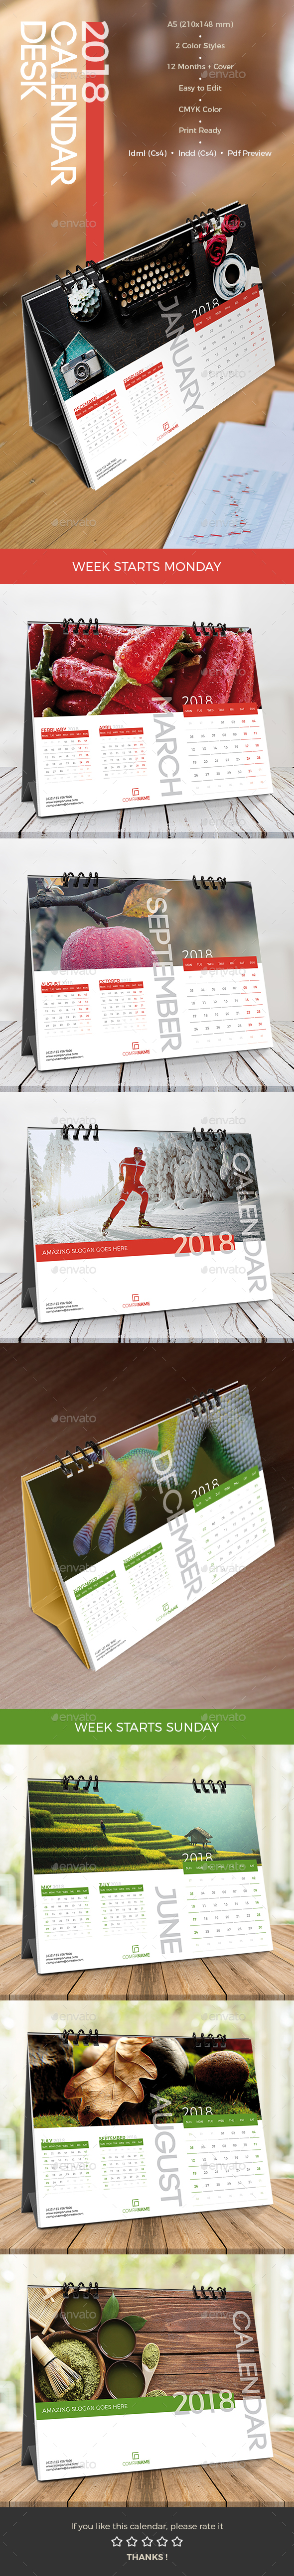 GraphicRiver Desk Calendar 2018 20562622